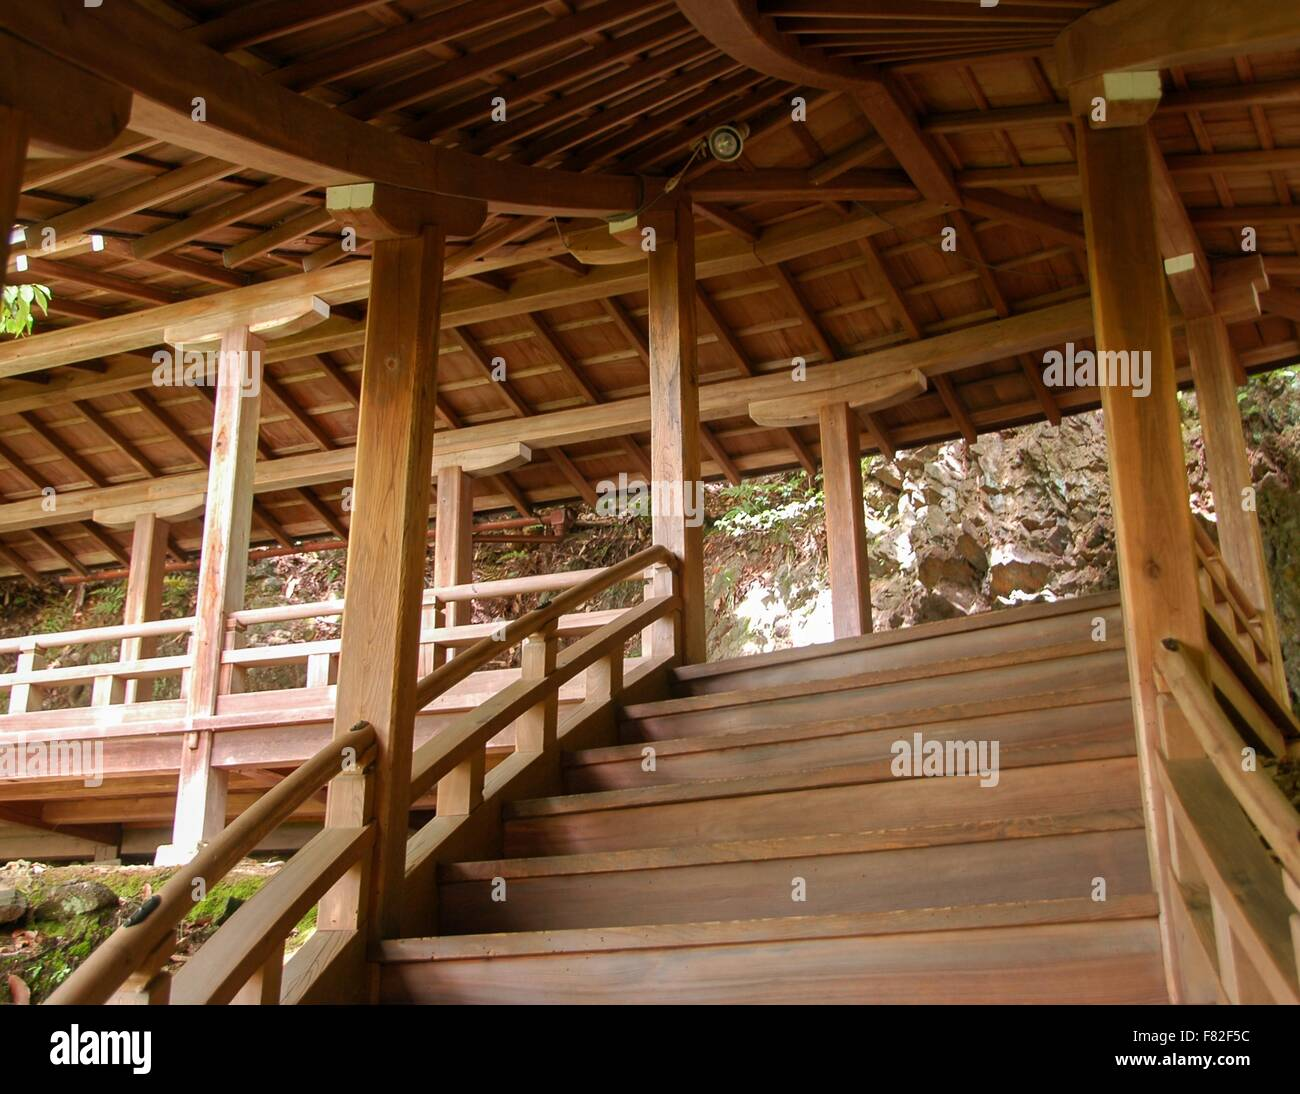 Amazing Woodworking: Amazing Woodwork At A Temple In Kyoto, Japan Stock Photo